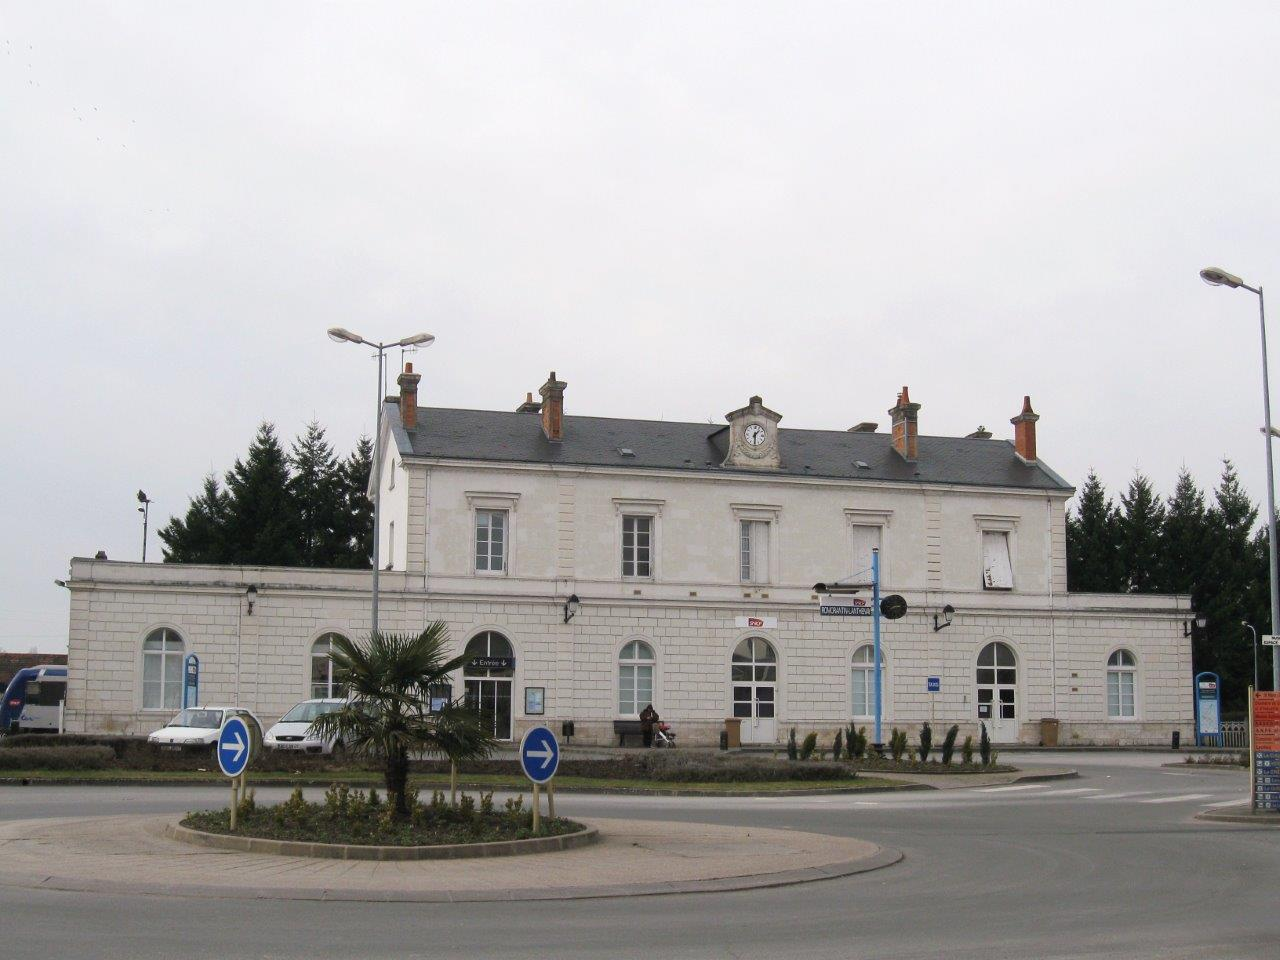 gare-de-romorantin-blanc-argent-train-station